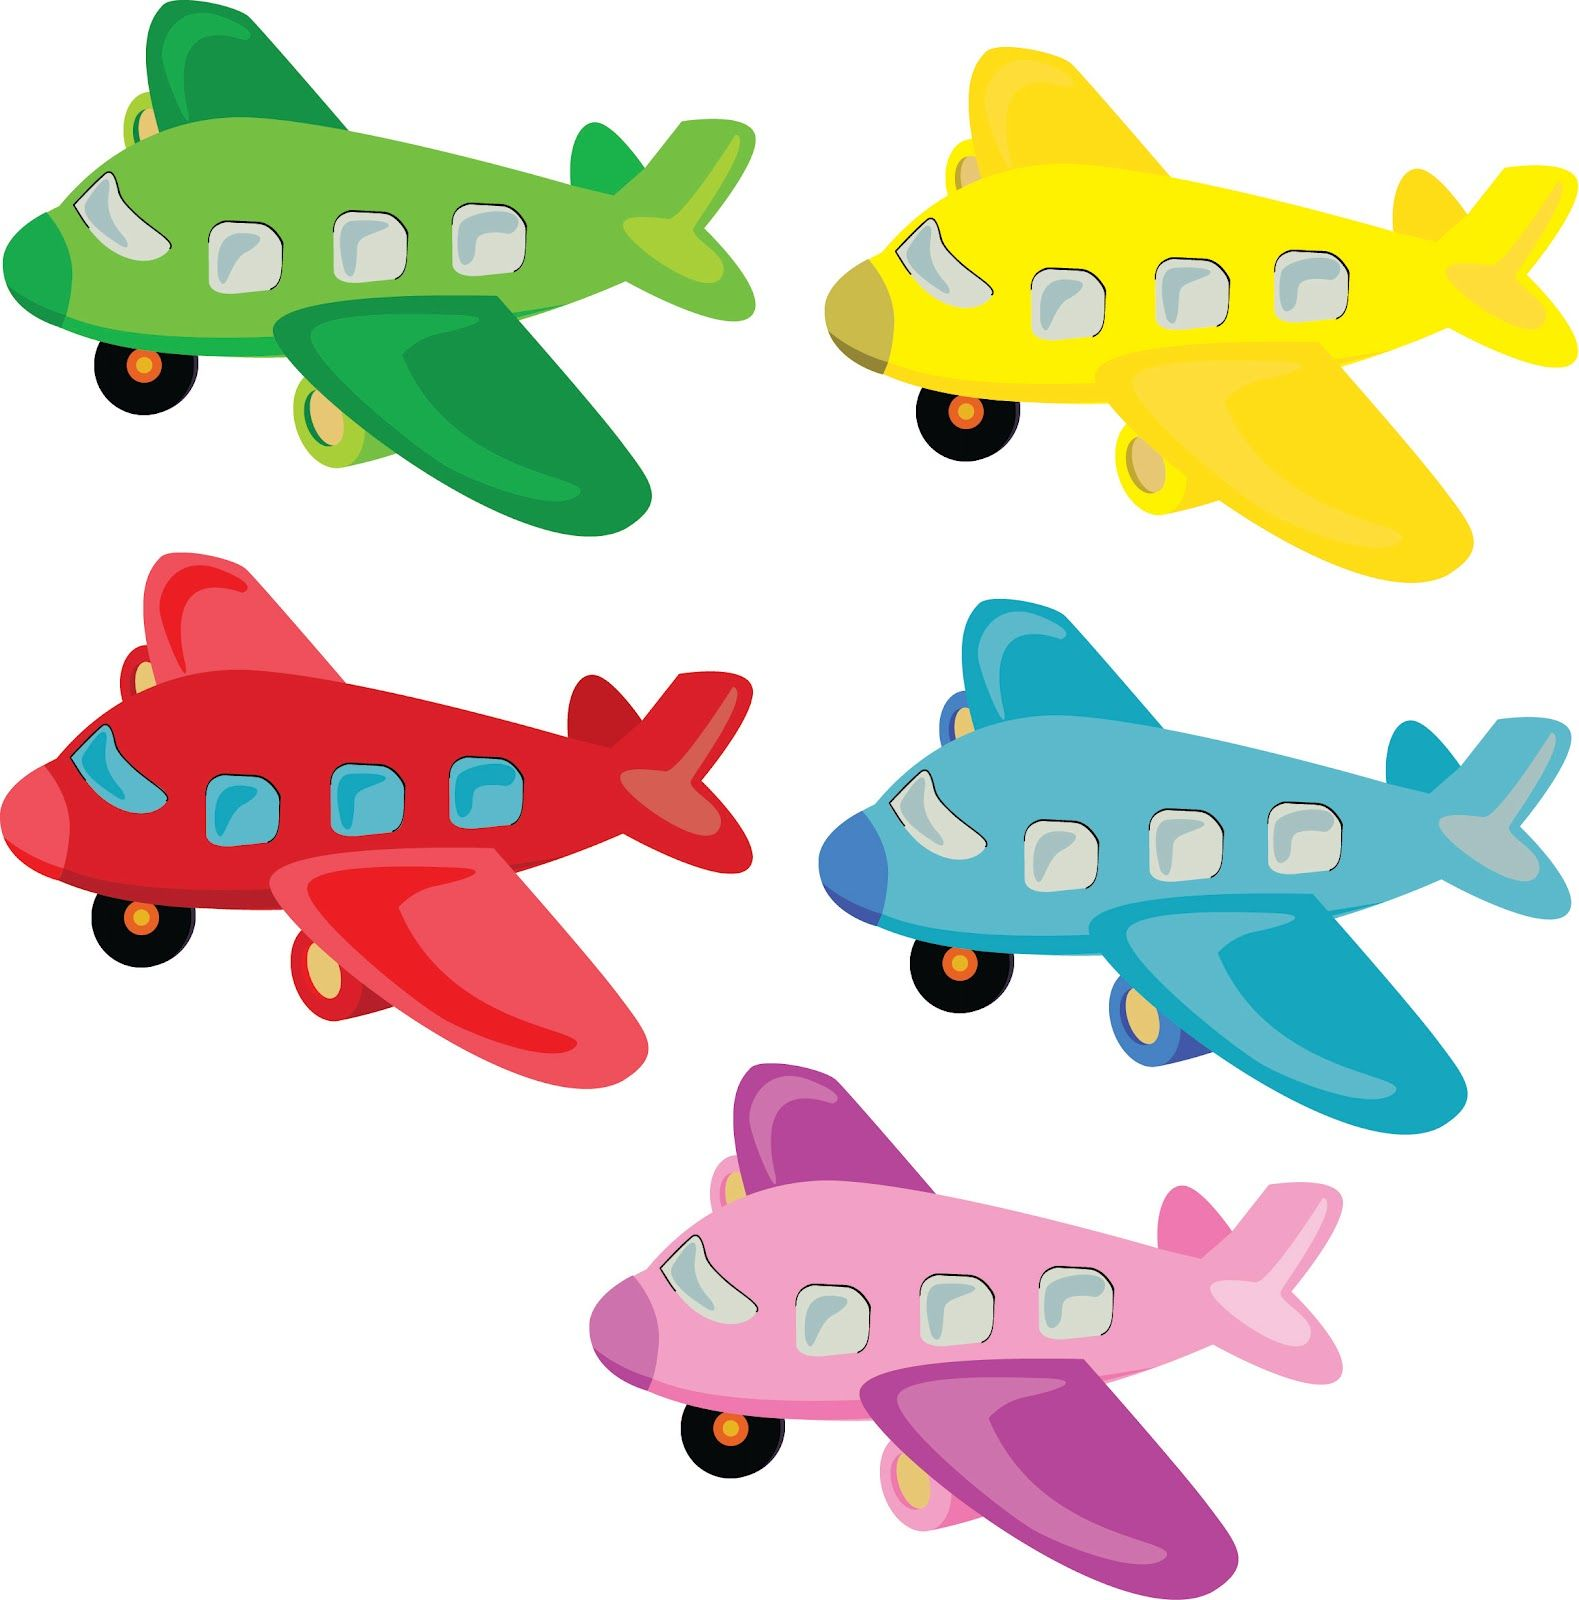 Cartoons Airplanes Elliyana S Game Des 751629 Png Images Pngio